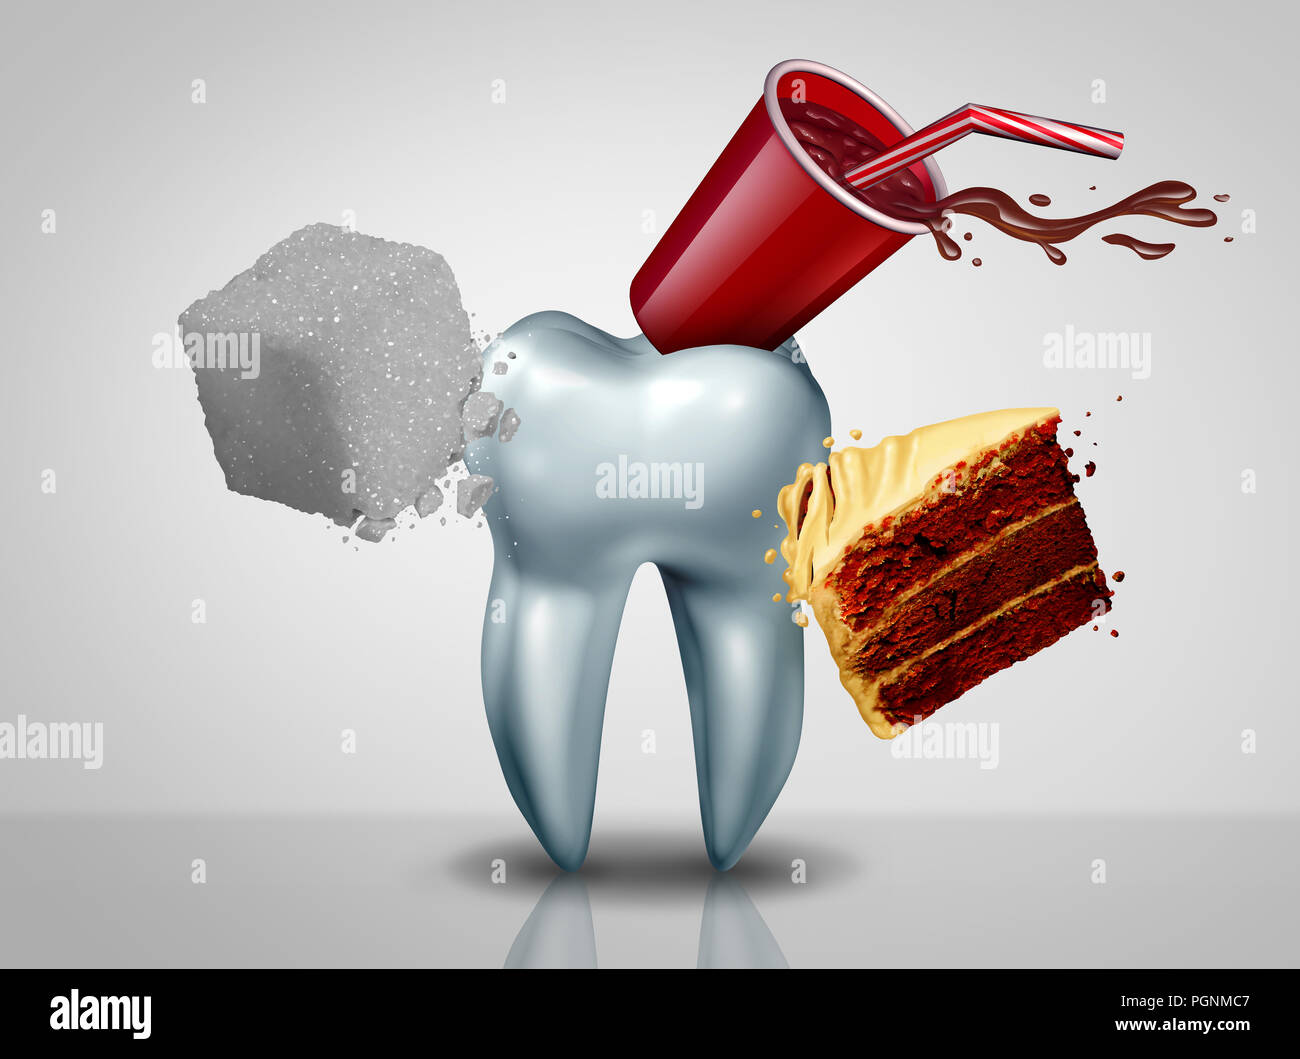 Effects of sugar on teeth as an oral care risk as a dentistry tooth health as sweet food as an acid causing bacteria and molar cavity or cavities. - Stock Image